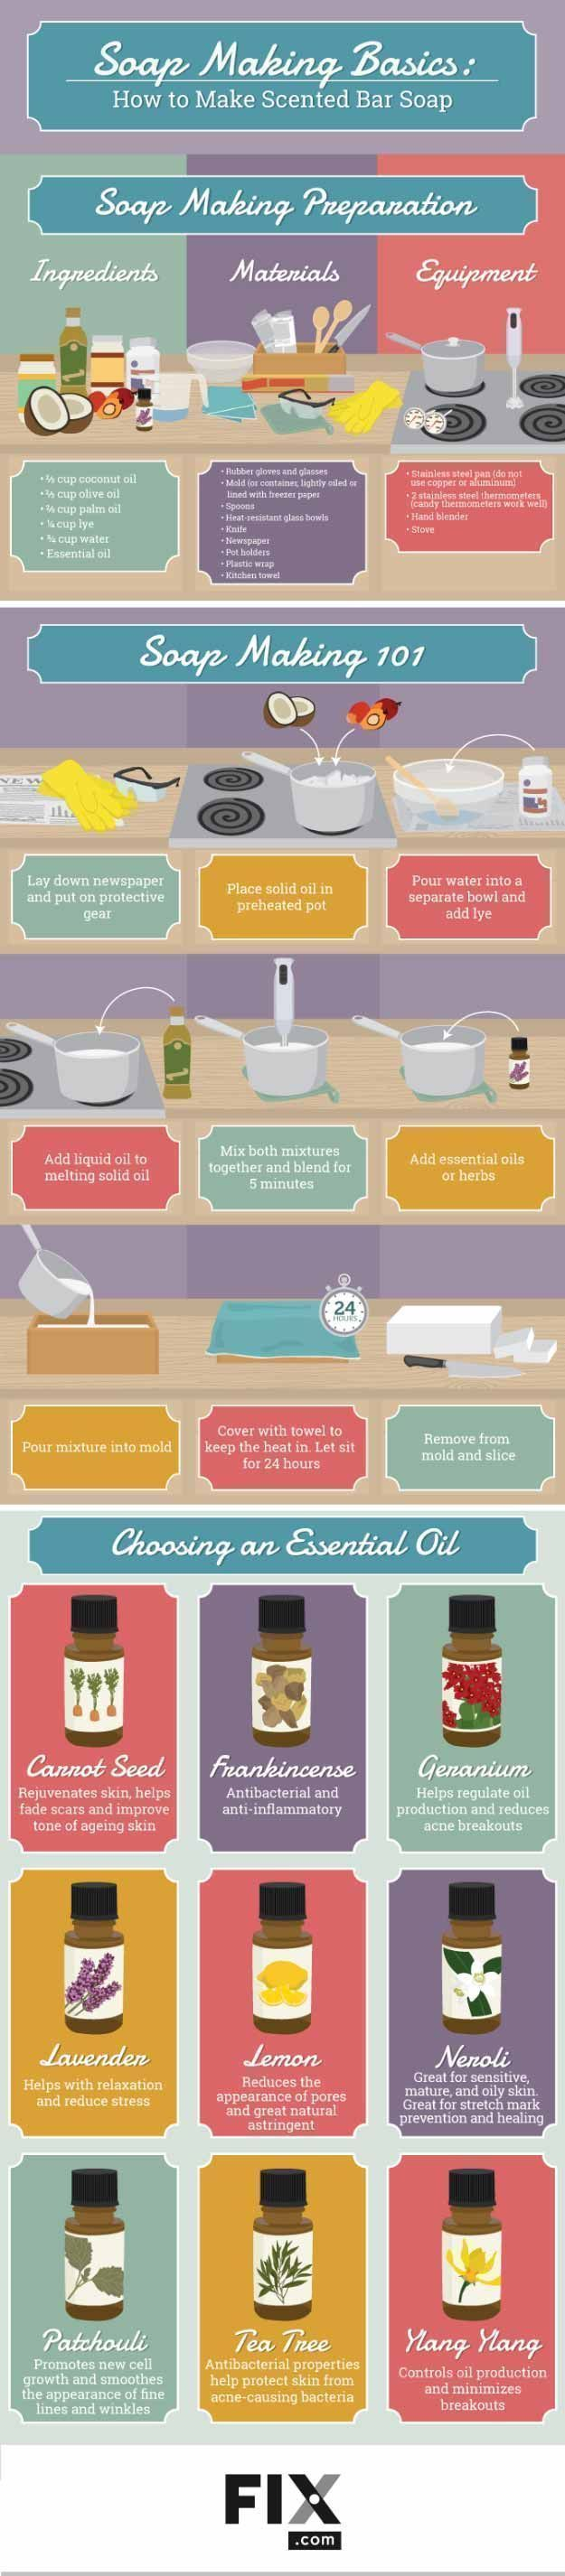 How to Make Soap At Home [Infographic]   Soap Making Tutorial For Beginners, check it out at http://diyready.com/how-to-make-soap-infographic/ #naturalsoapmakingforbeginners #soapinfographic #soapmakingforbeginners